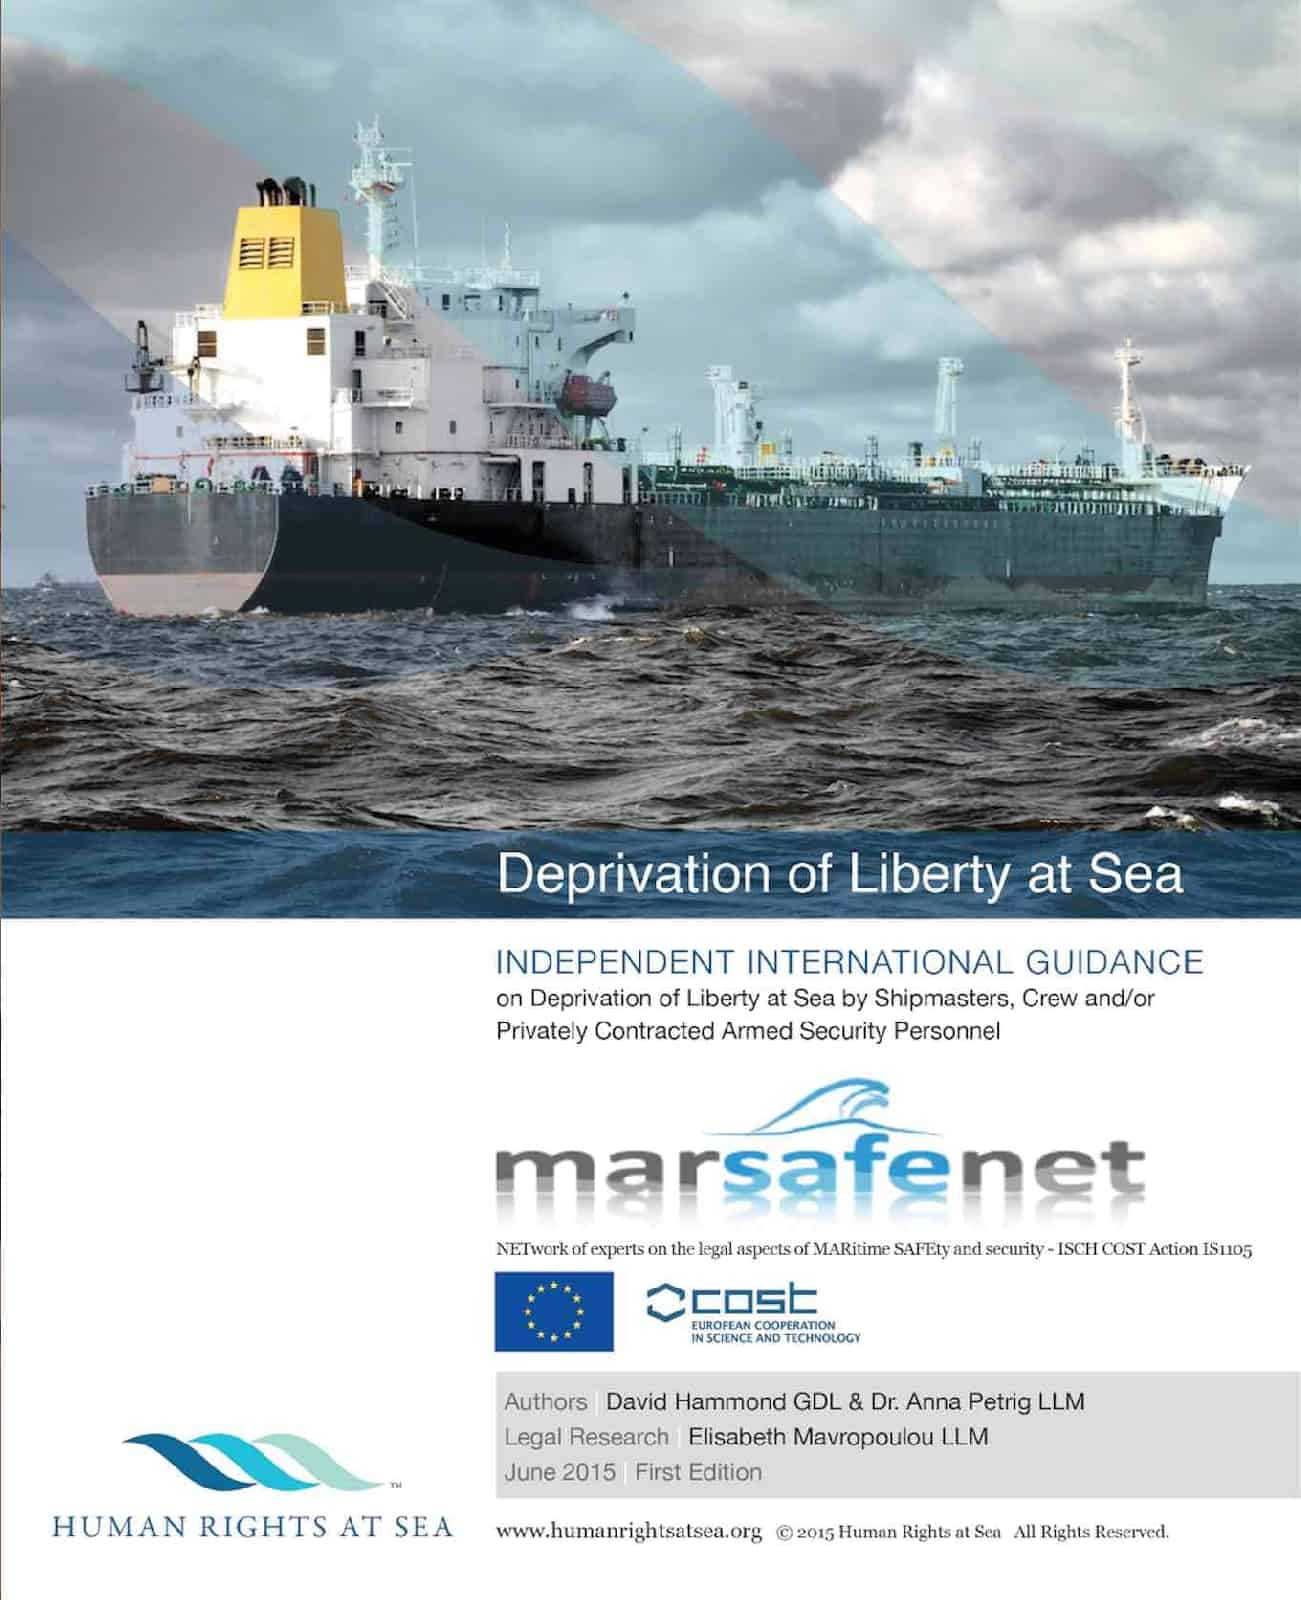 Deprivation of Liberty at Sea International Guidance